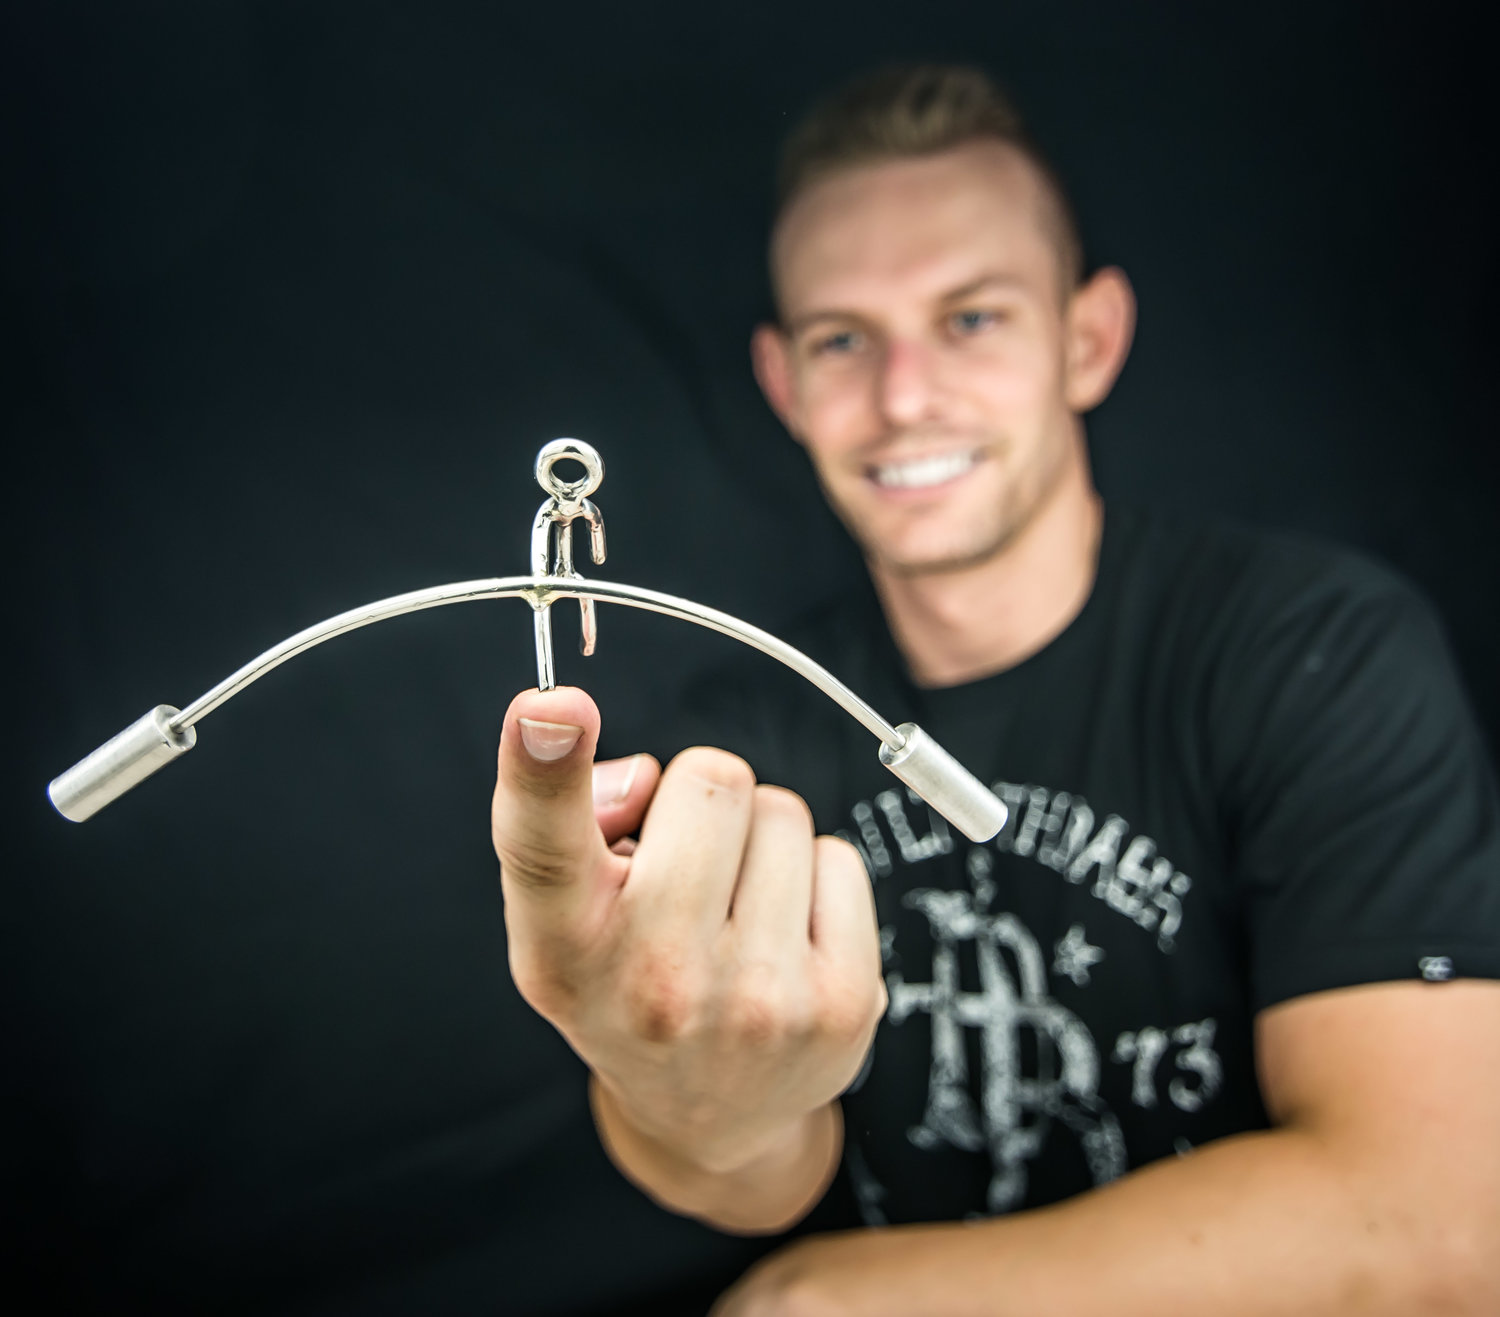 Kyle Auga of Kyle's Kinetics balances one of this metal sculptures on his finger